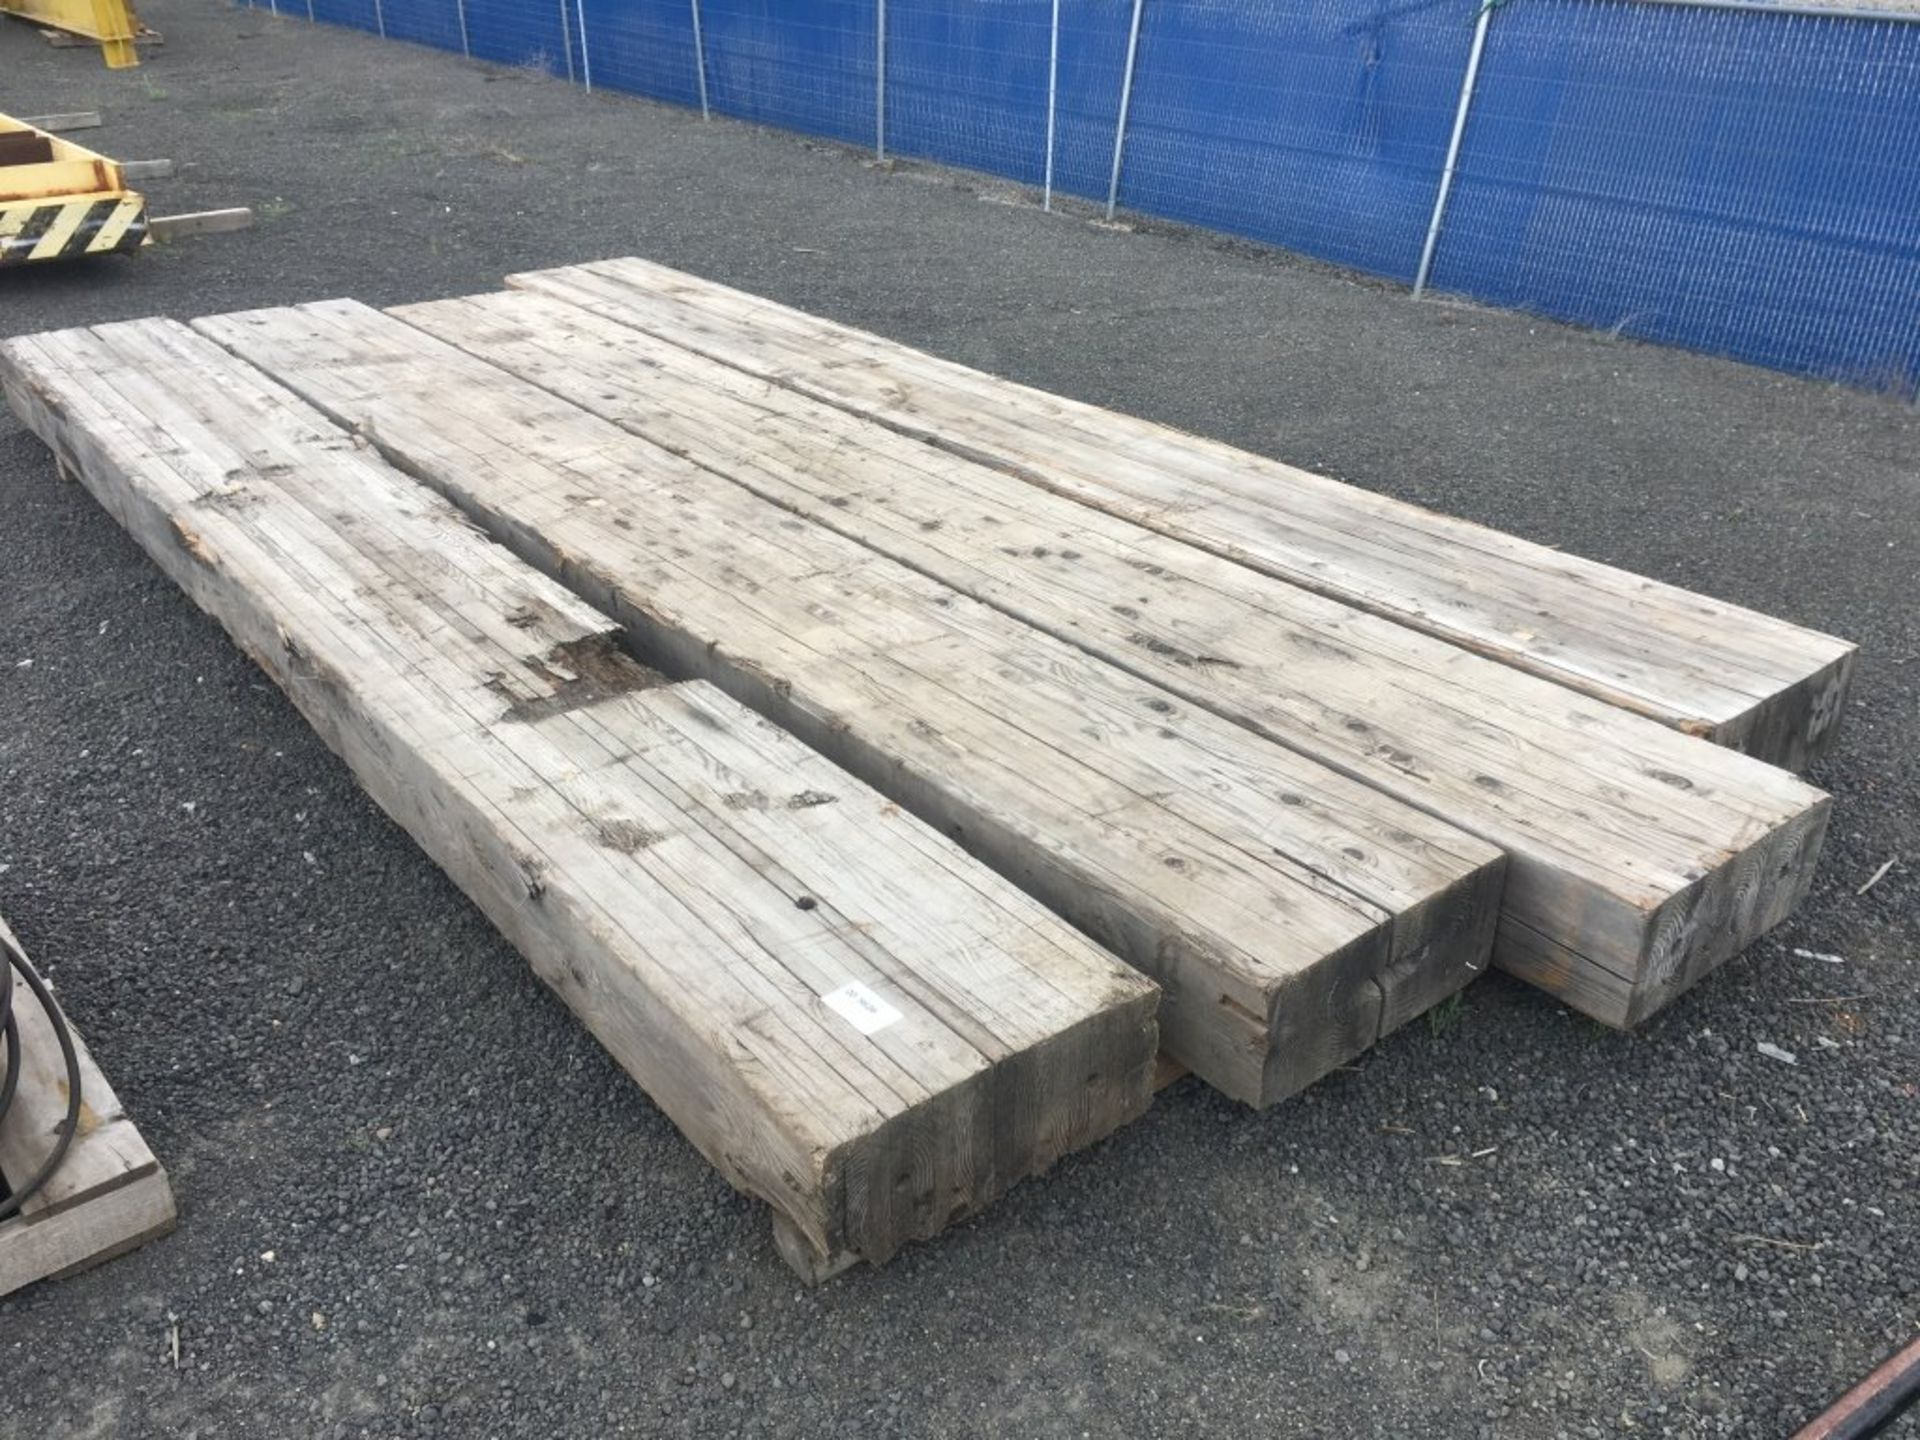 Lot 249 - Wood Support Timbers Qty 4